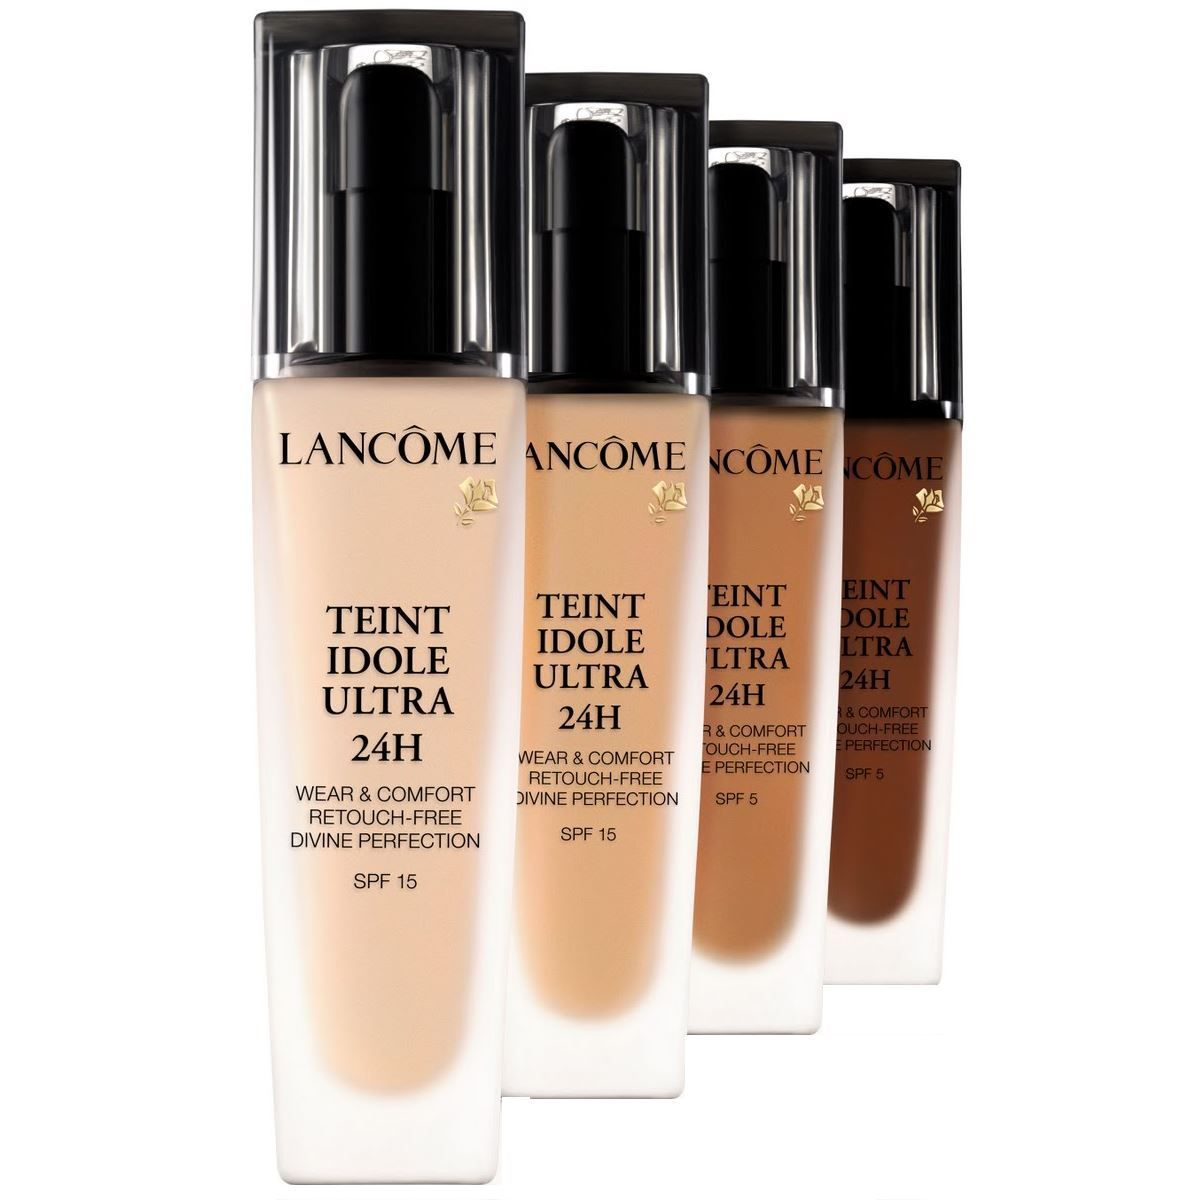 Teint Idole Ultra Liquid 24h Longwear SPF 15 Foundation